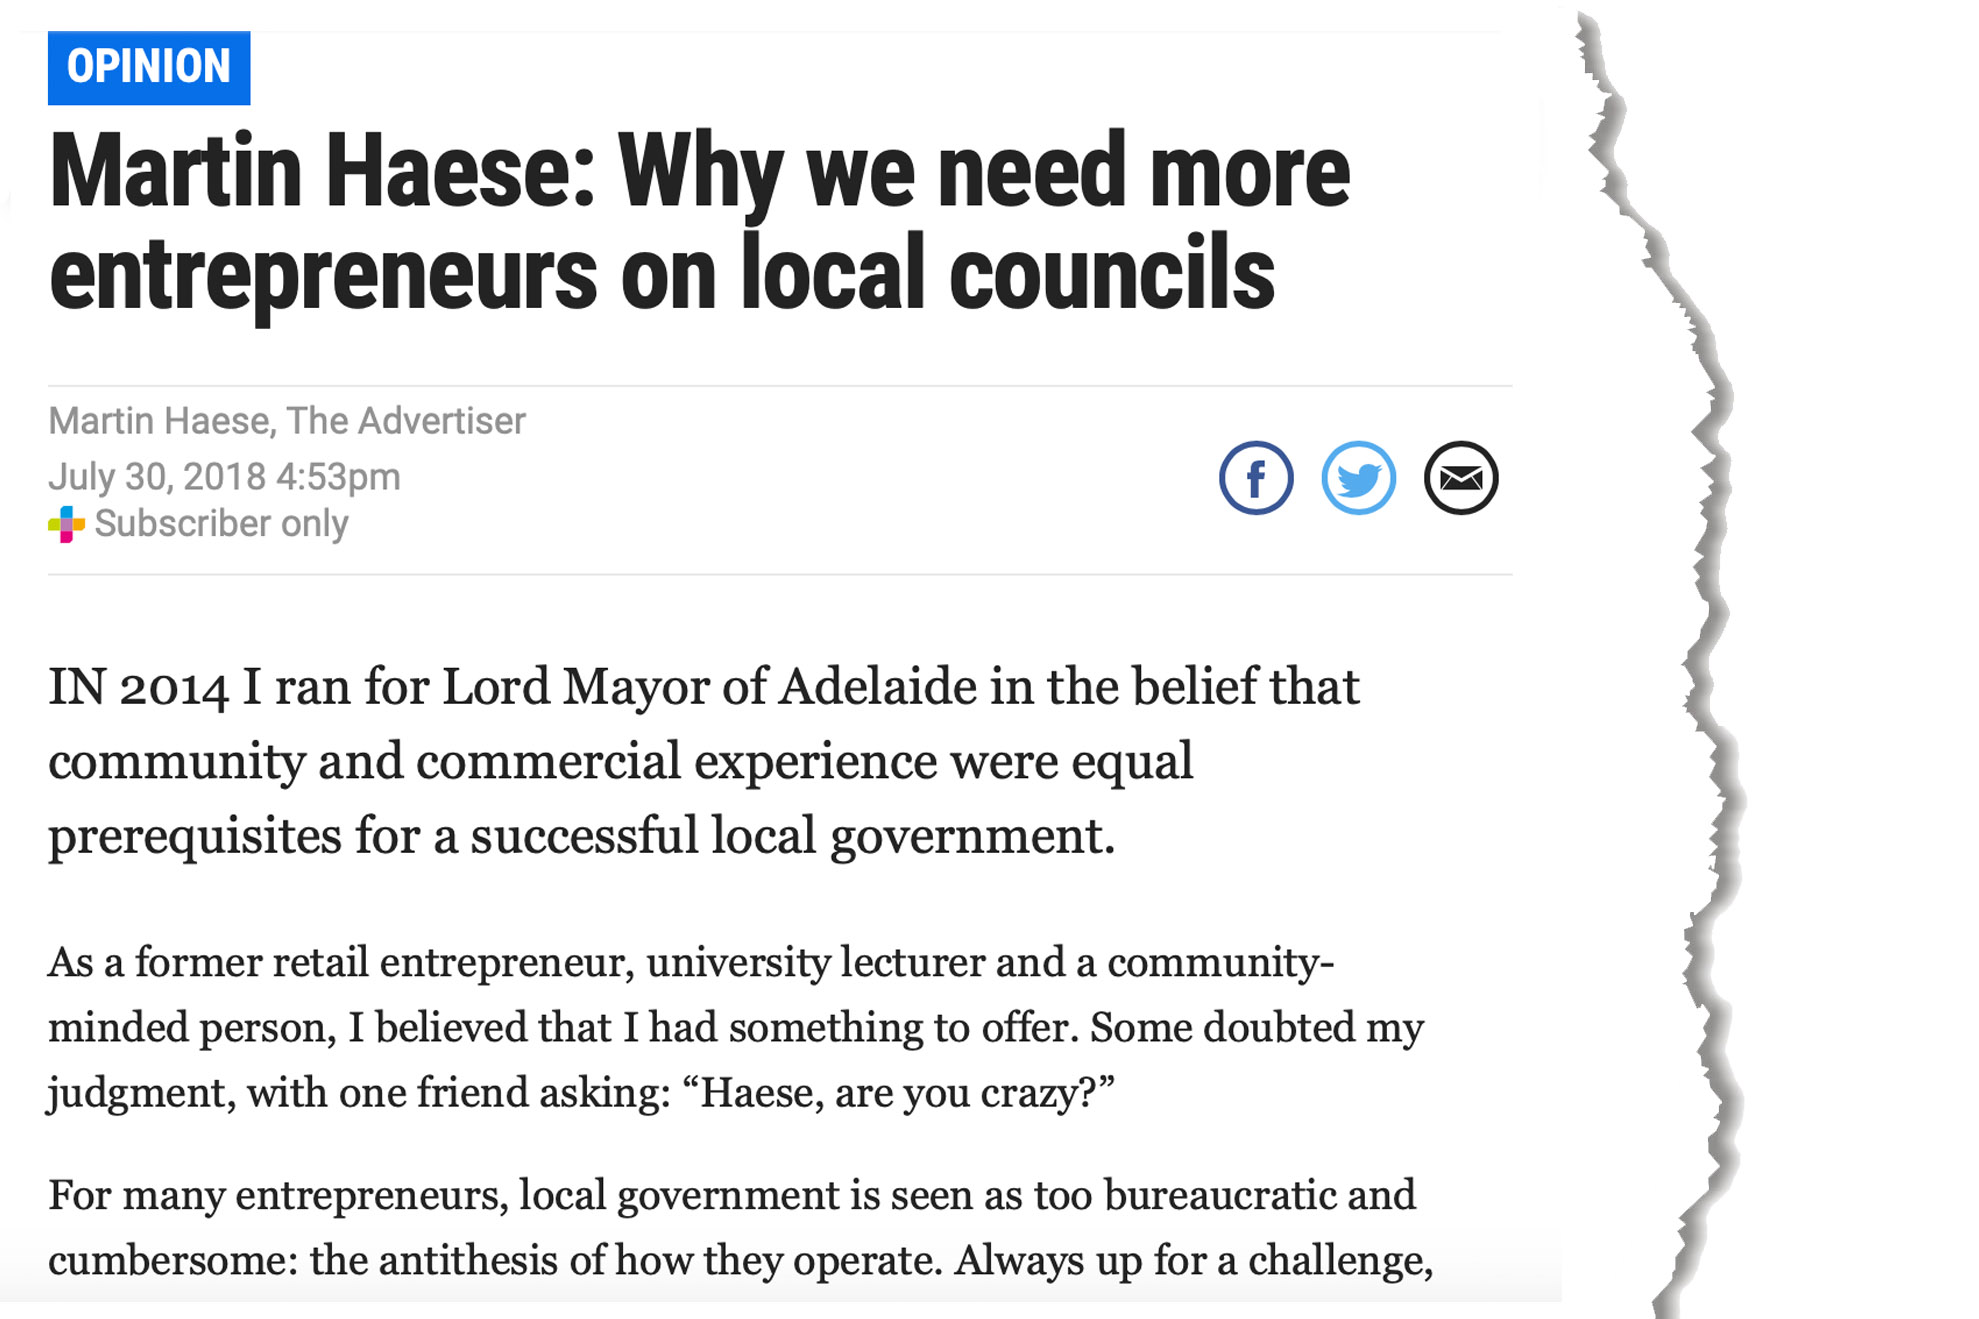 martin-haese-entrepreneurs-the-advertiser-30-july-2018